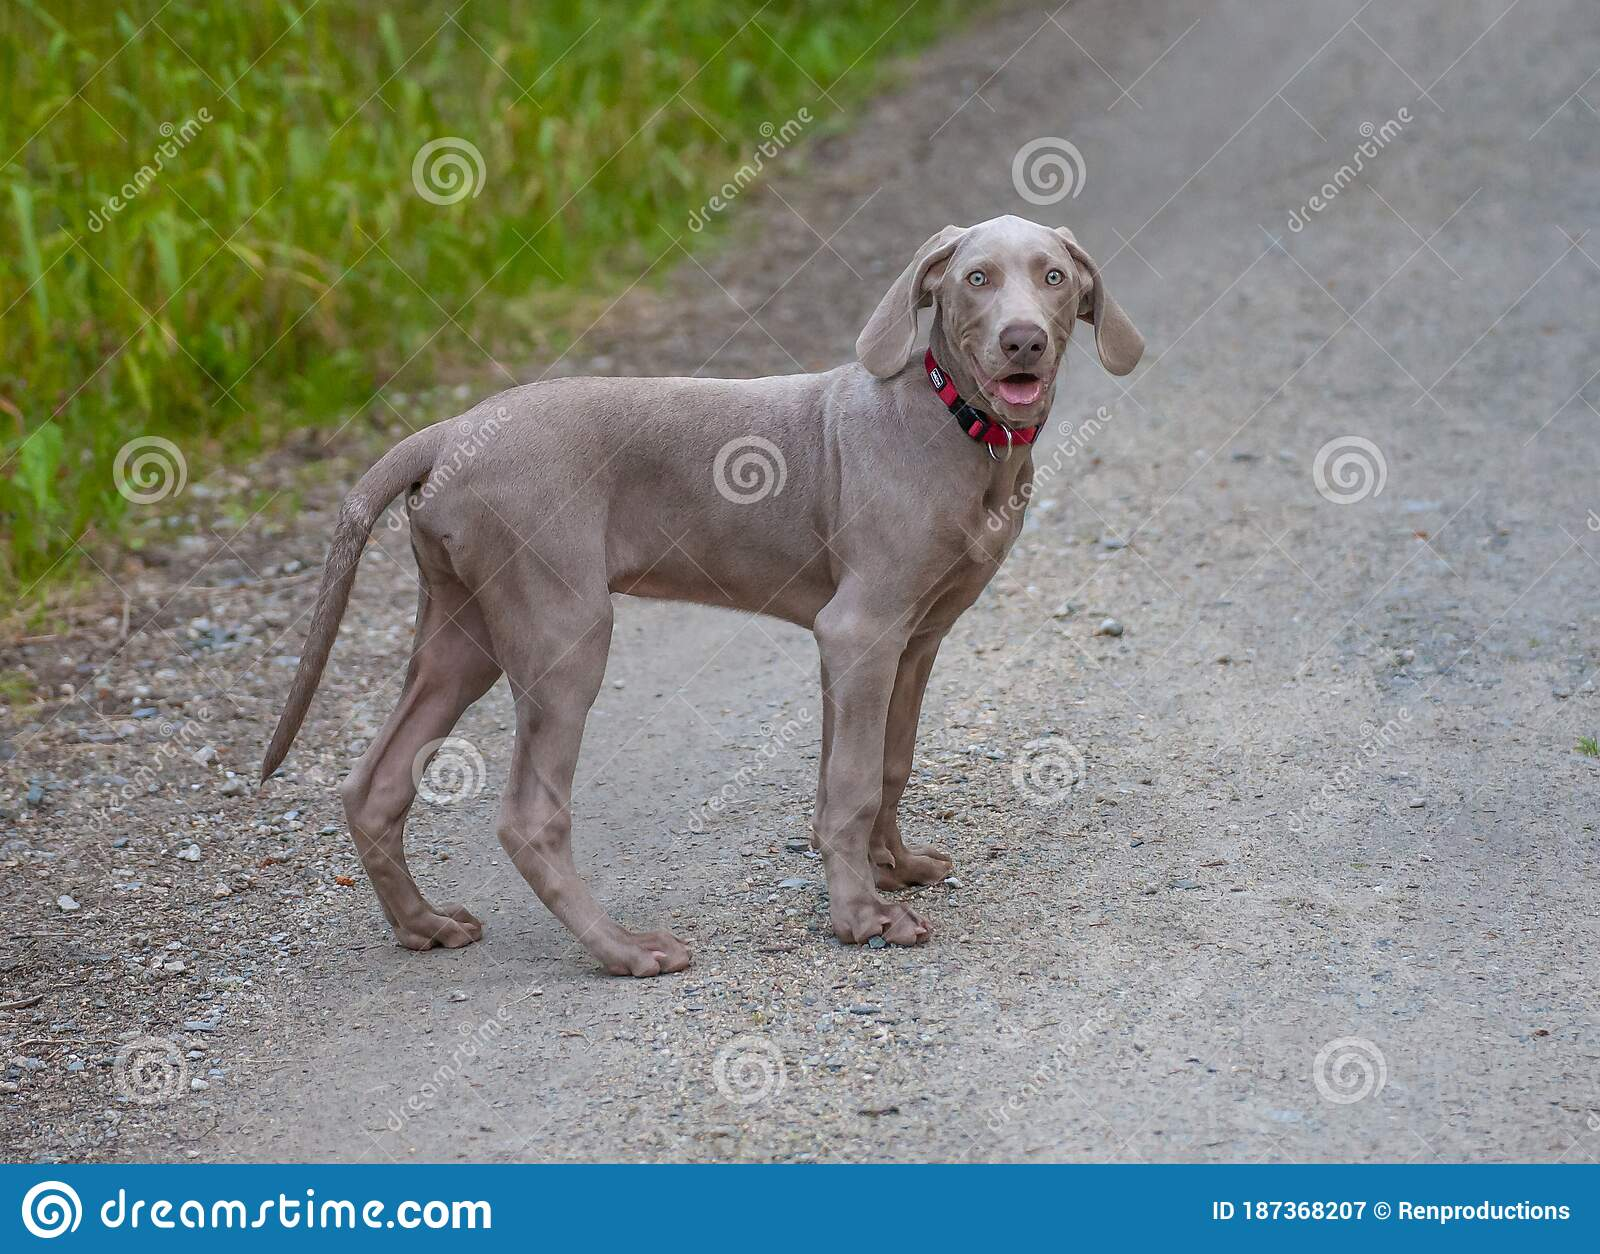 Weimaraner Puppy Takes His First Steps In Training Stock Image Image Of Hiking Deworming 187368207